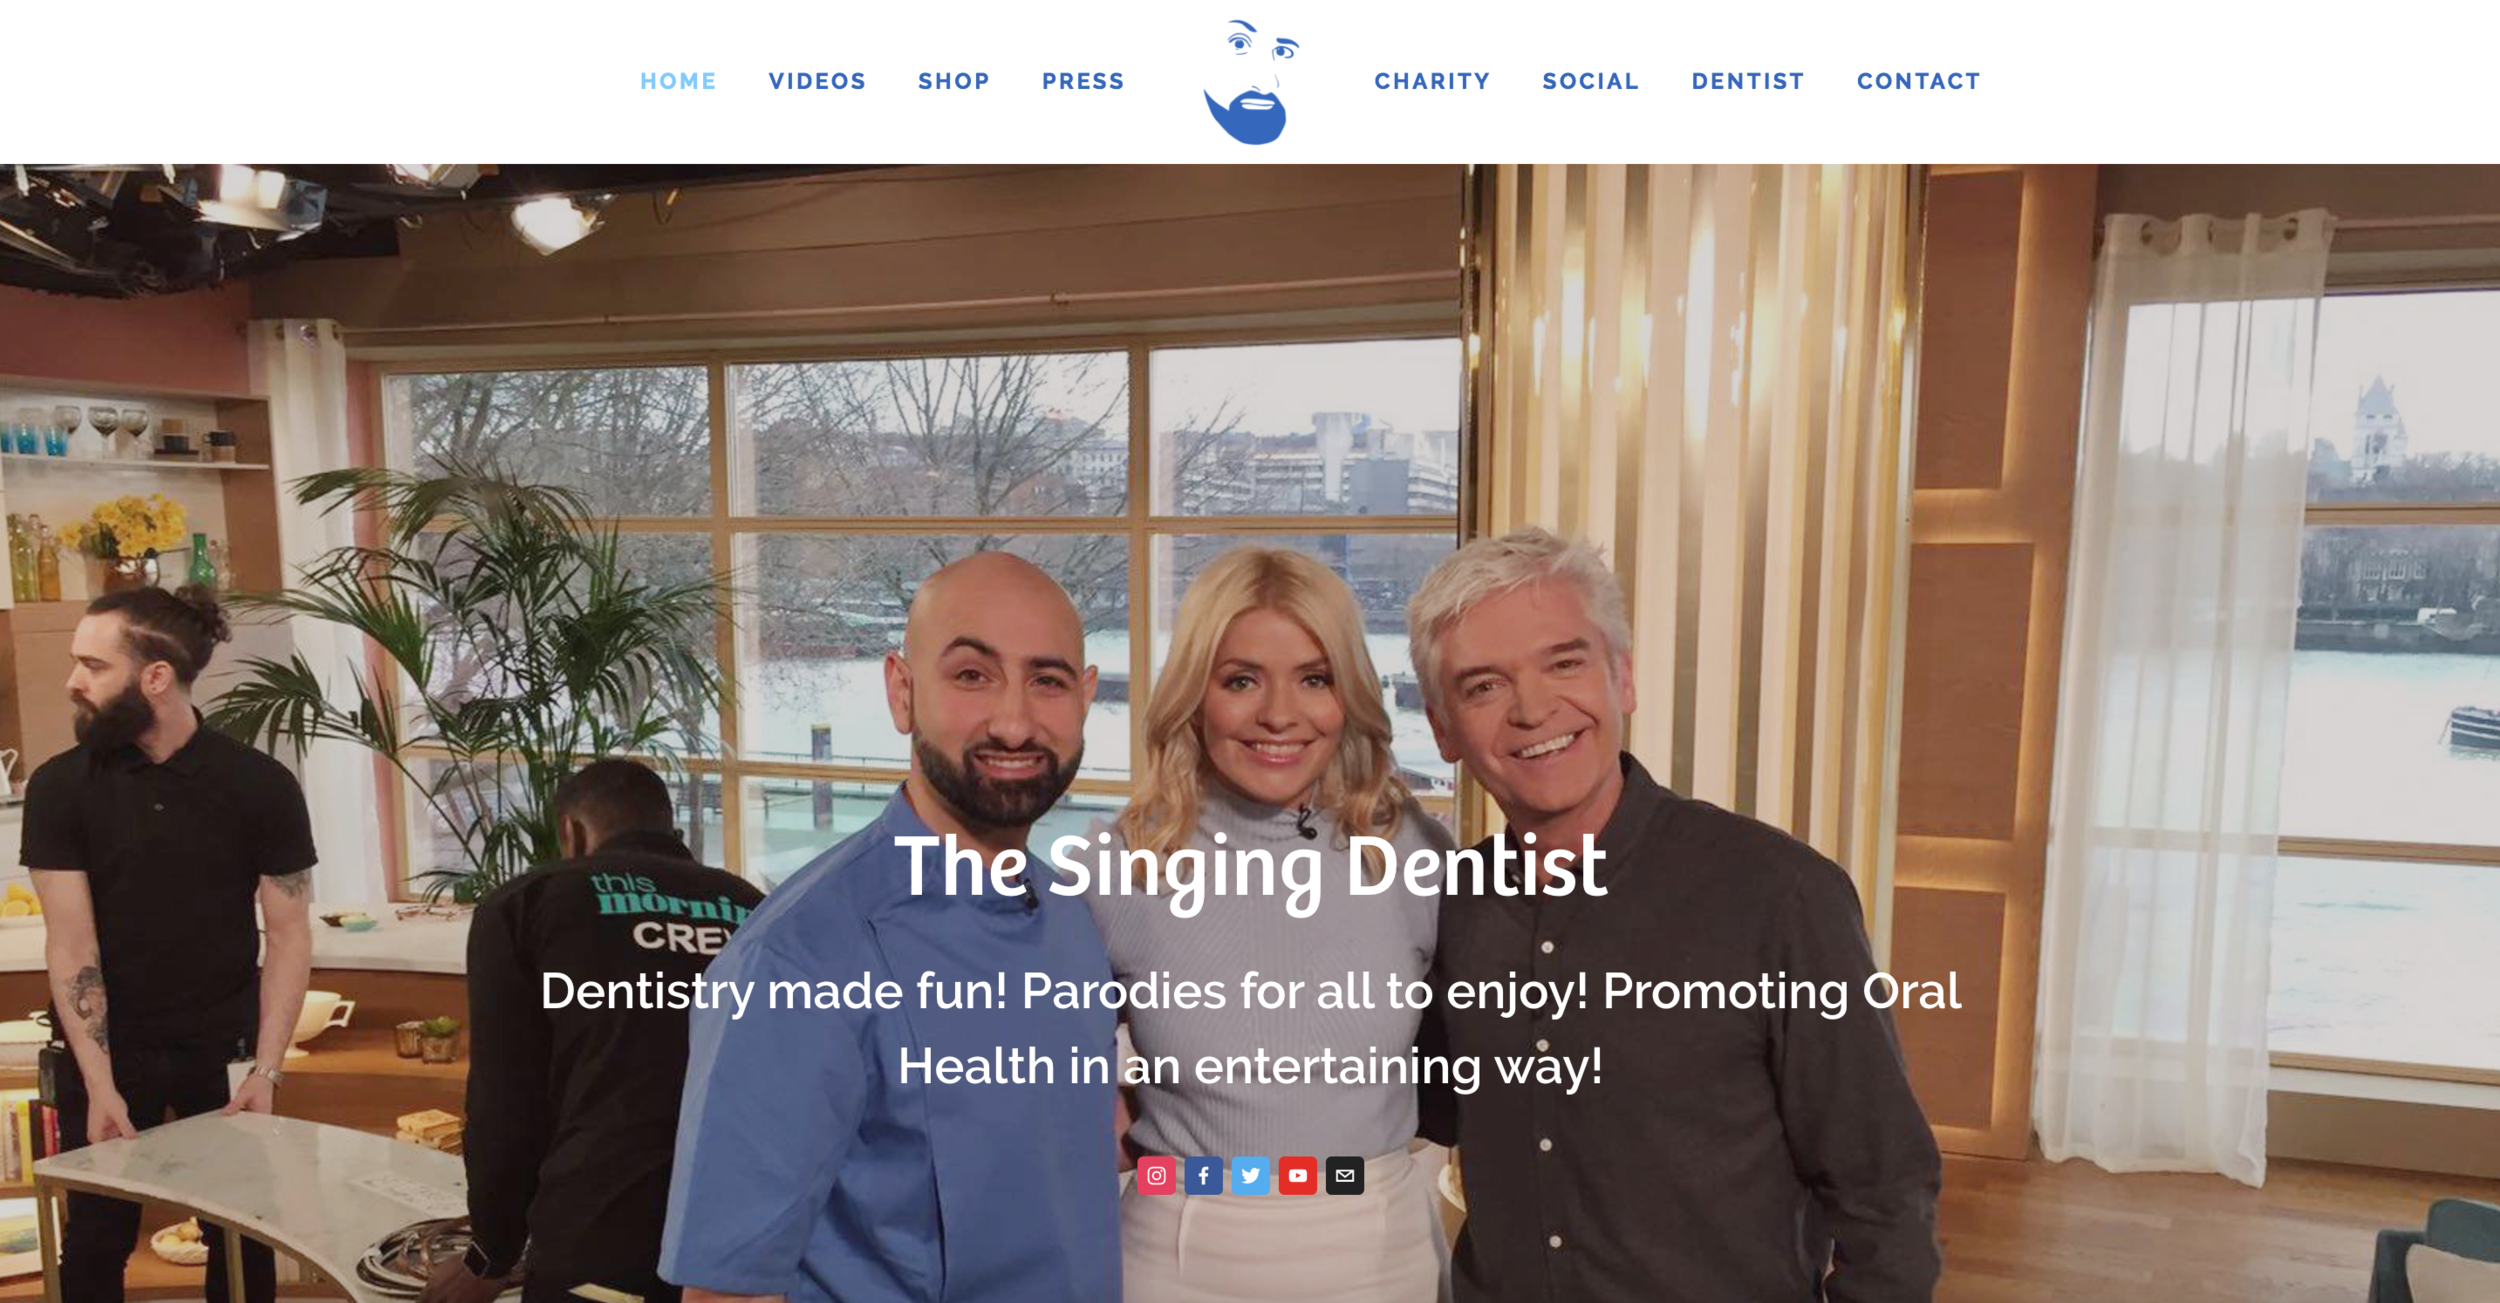 The Singing Dentist - www.singingdentist.com